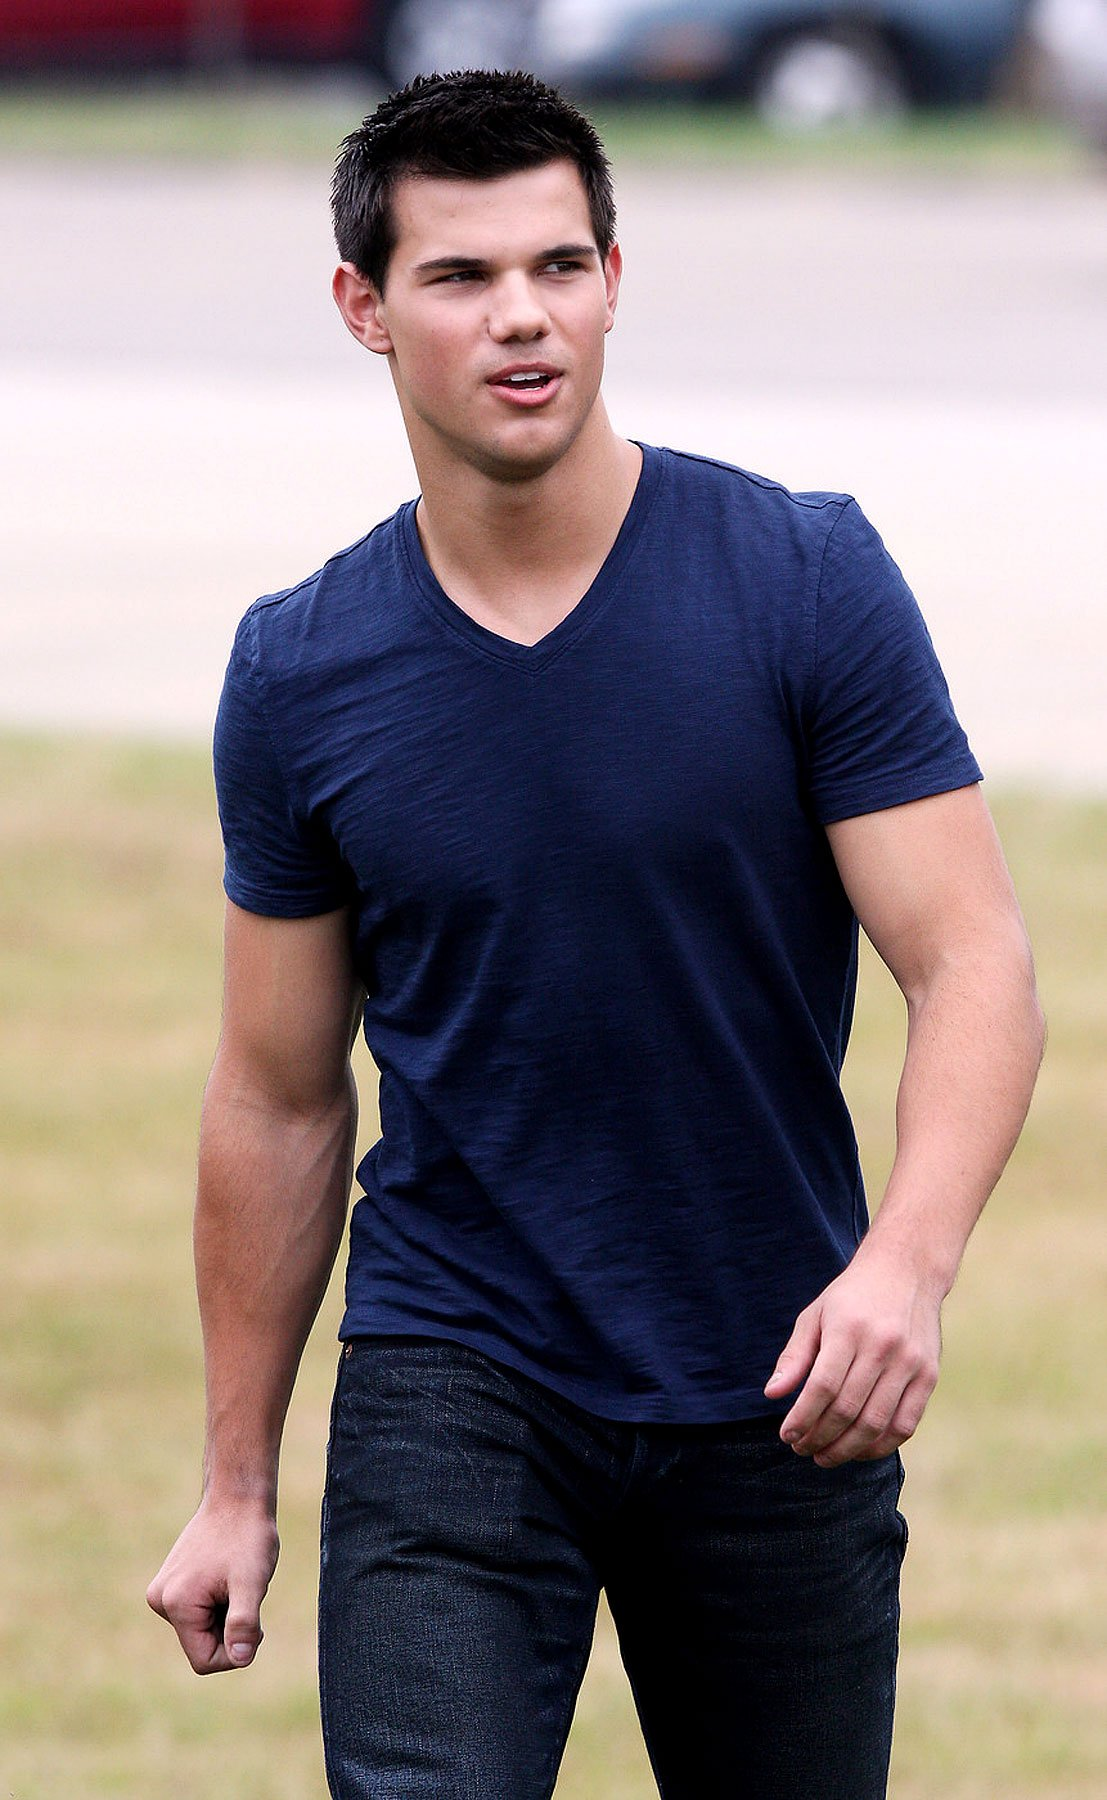 Taylor Lautner on the Set of 'Abduction' (PHOTOS)